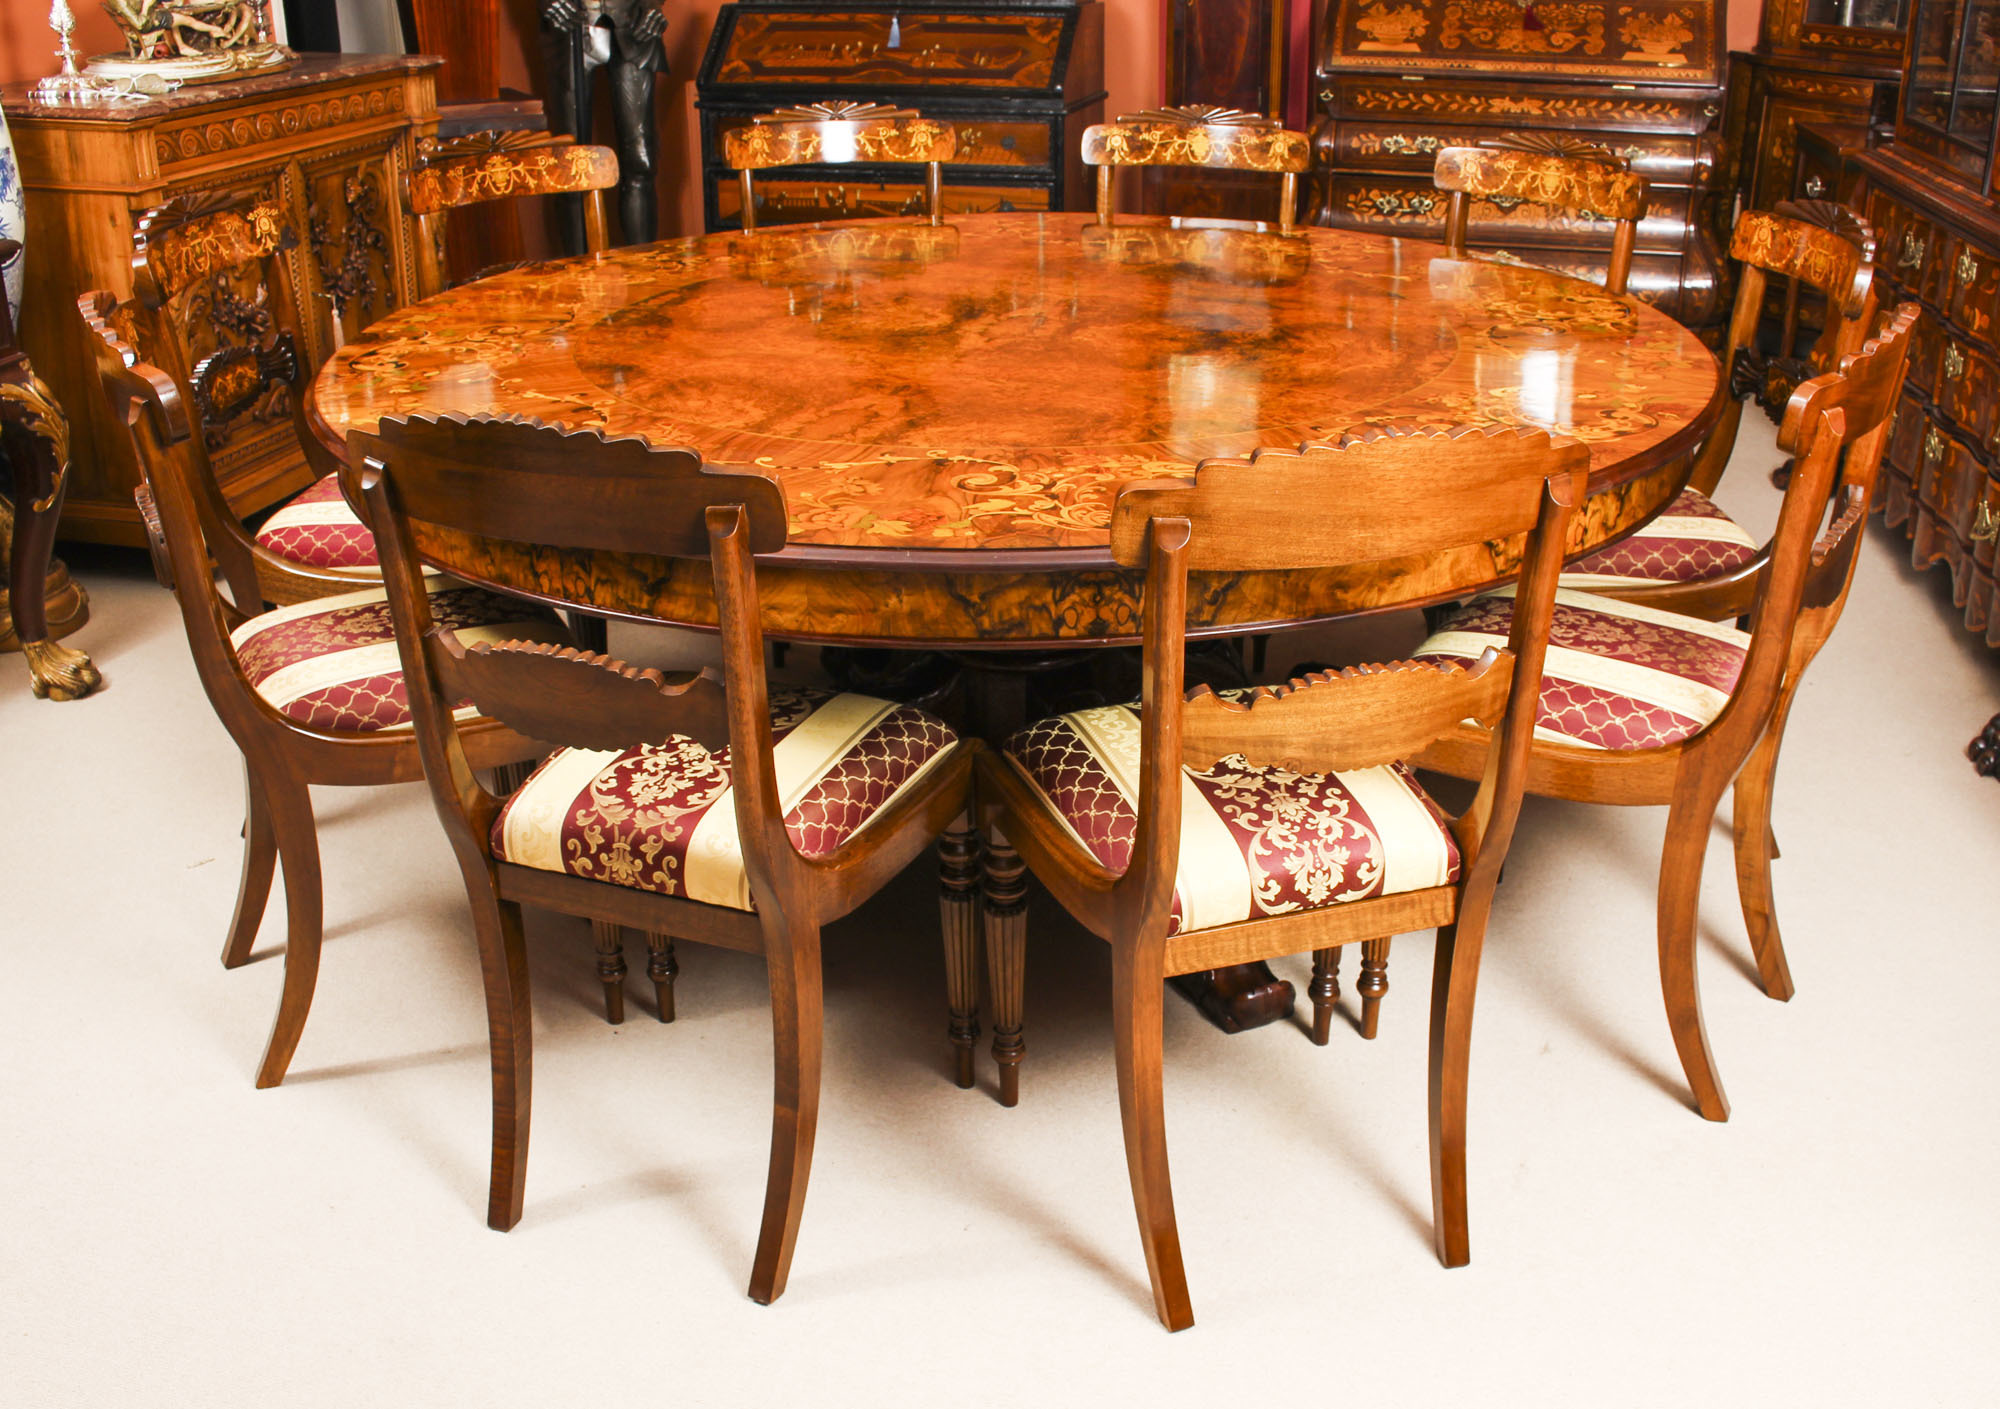 Vintage 6ft 6 Inch Diameter Round Marquetry Dining Table 10 Chairs